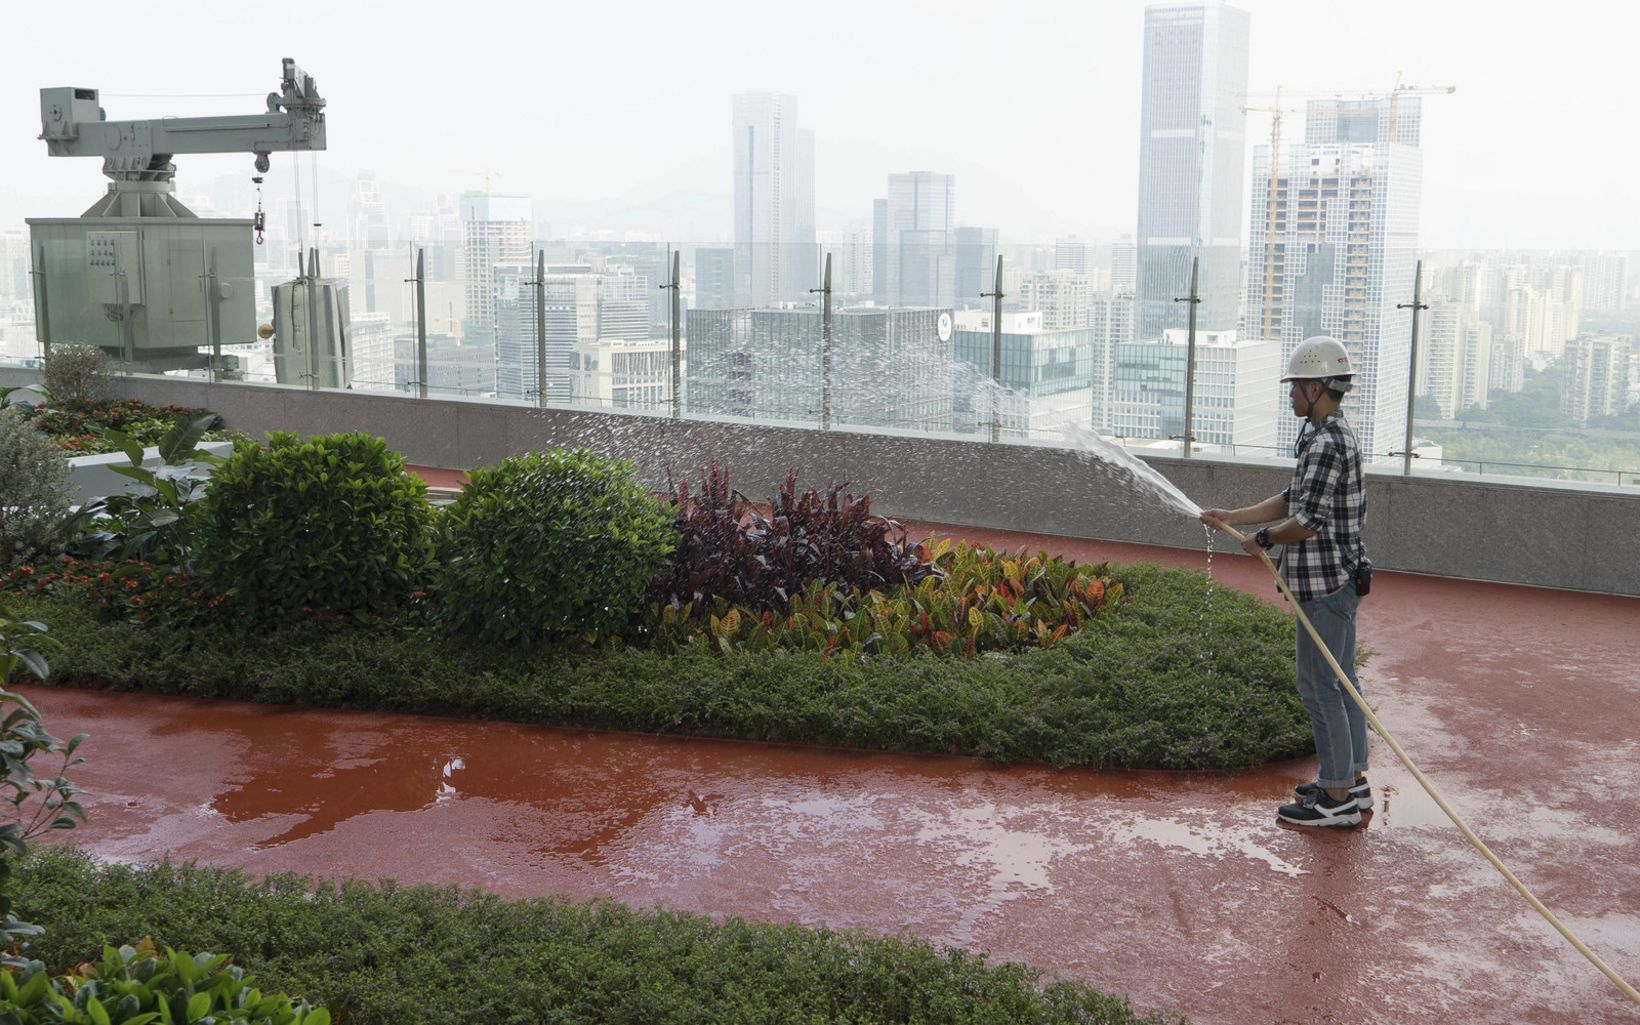 An employee waters the rooftop garden on the rooftop garden on the Tencent Binhai towers in Shenzhen, China.